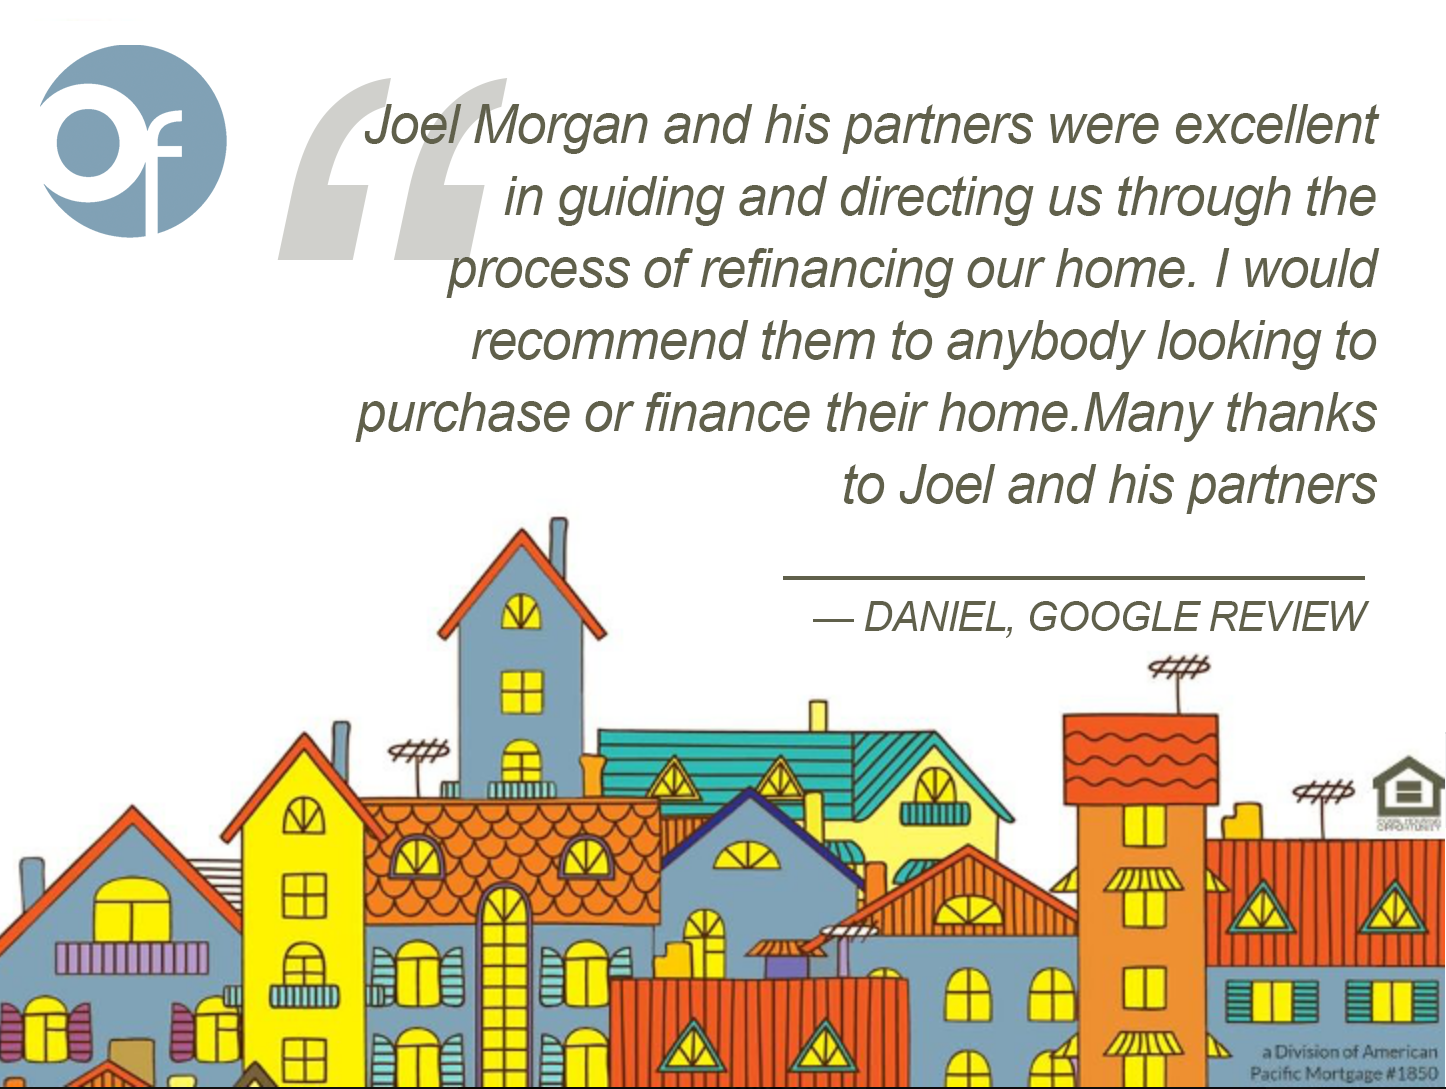 Joel Morgan and his partners were excellent in guiding and directing us through the process of refinancing our home. I would recommend them to anybody looking to purchase or finance their home. Many thanks to Joel and his partners